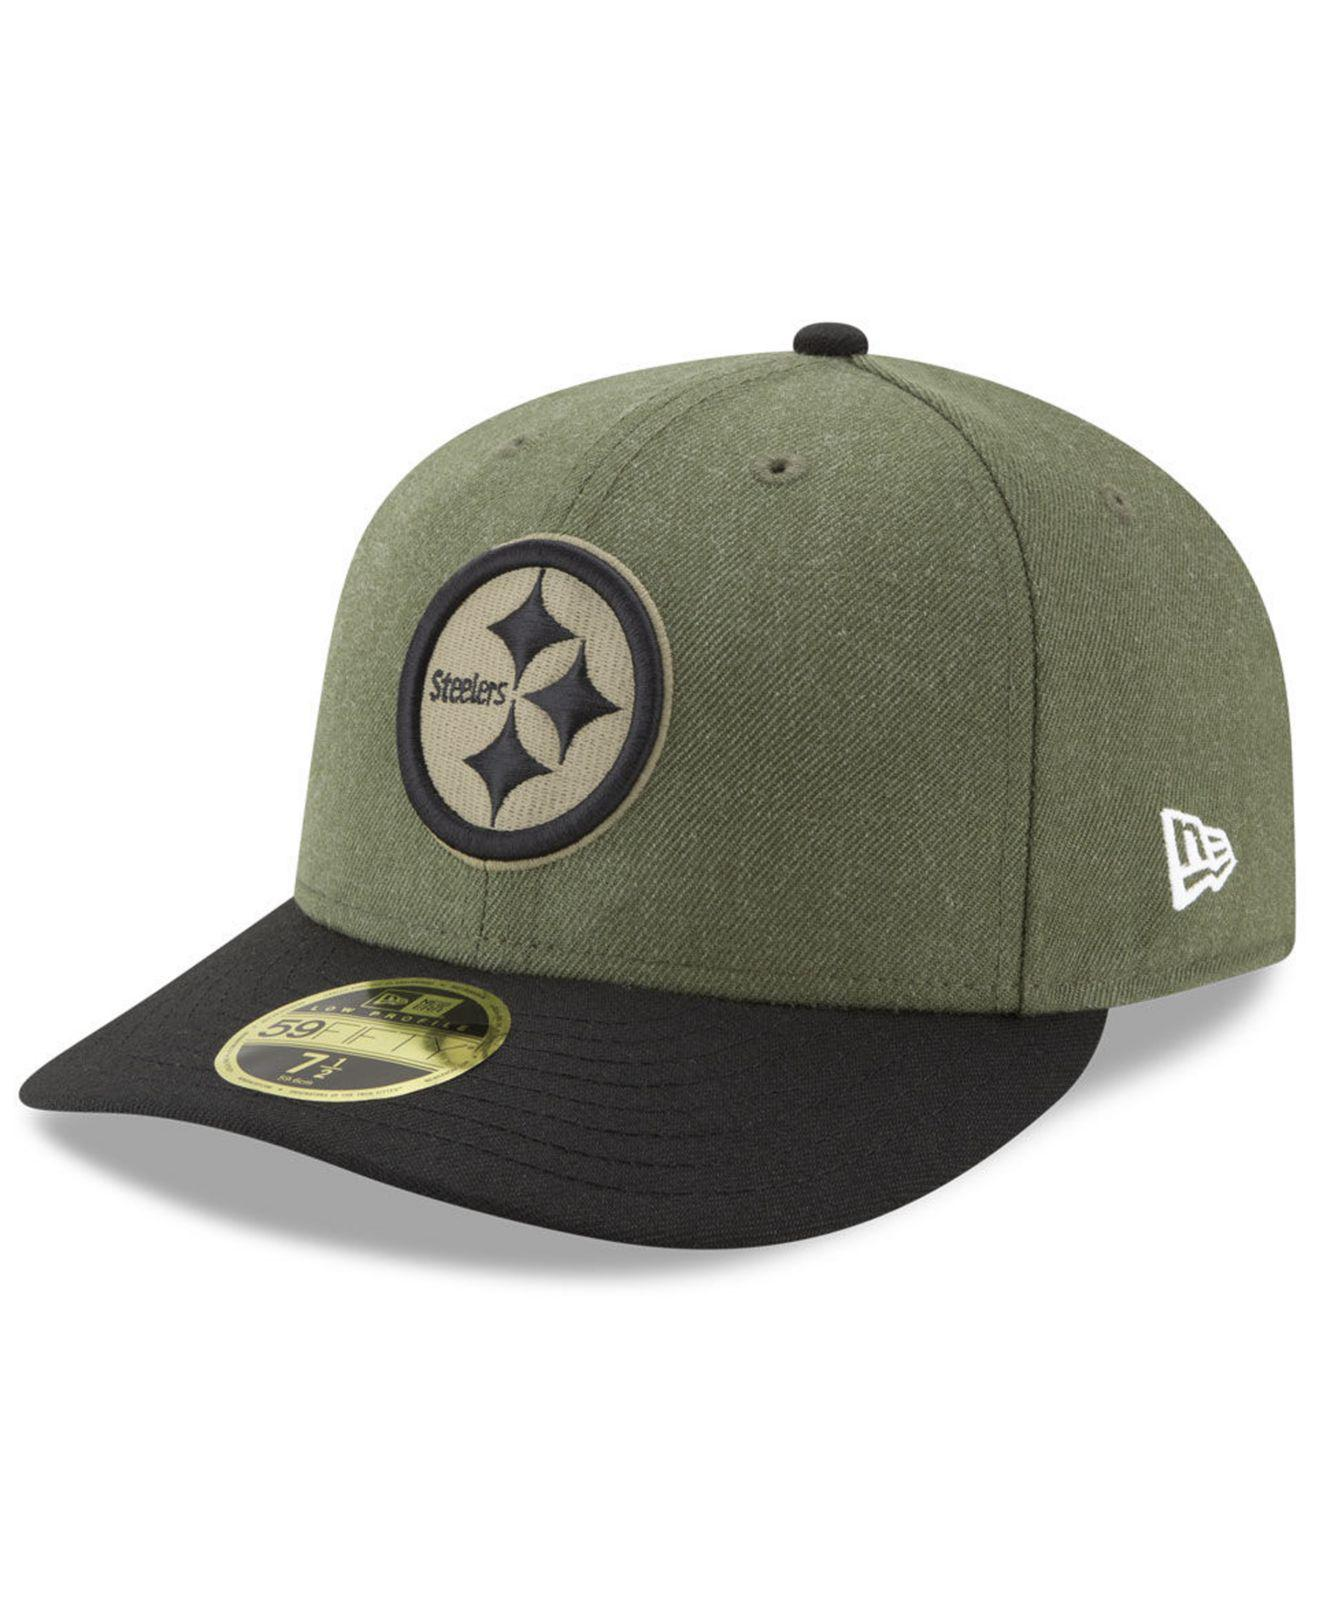 new product 0d7f1 093f2 ... Salute To Service Low Profile 59fifty Fitted Cap 2018 for Men. View  fullscreen